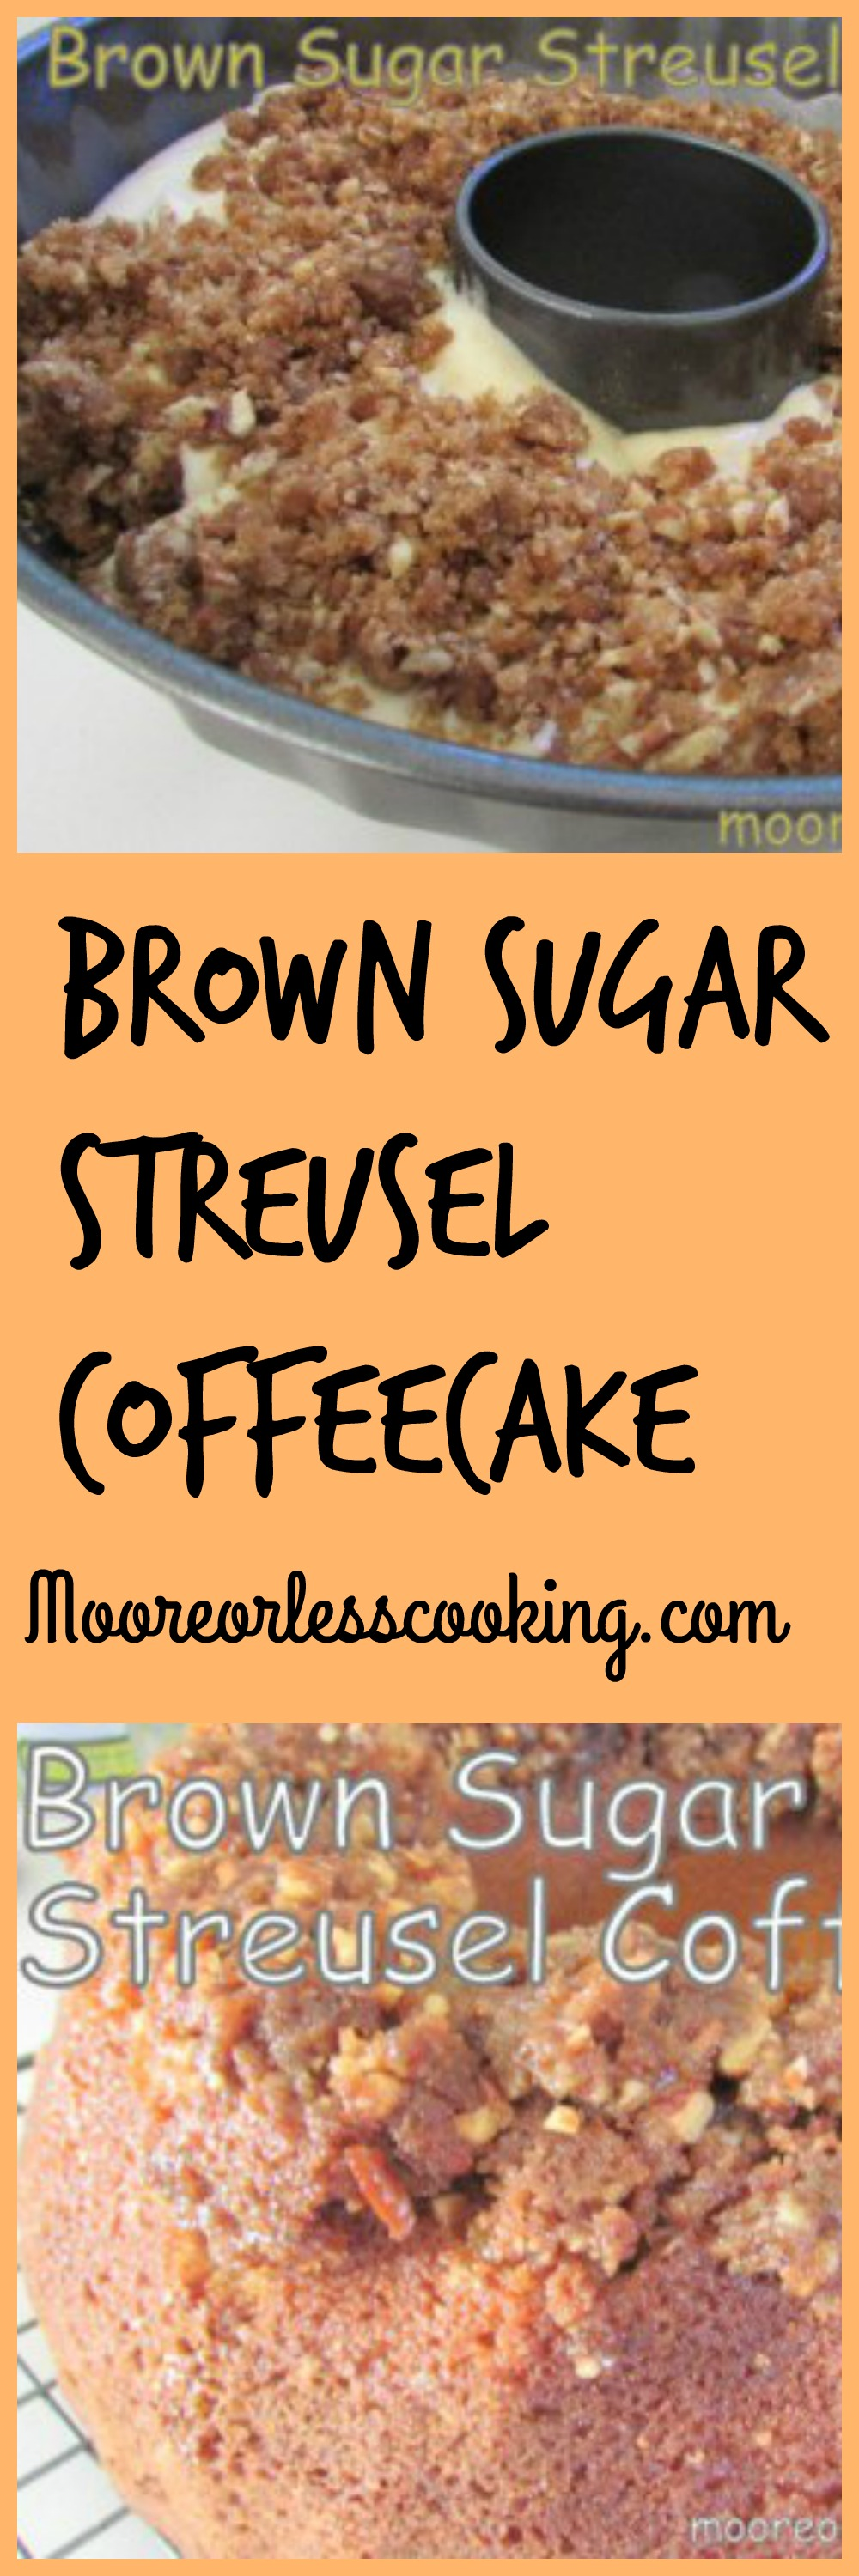 Streusel coffee cake recipes easy